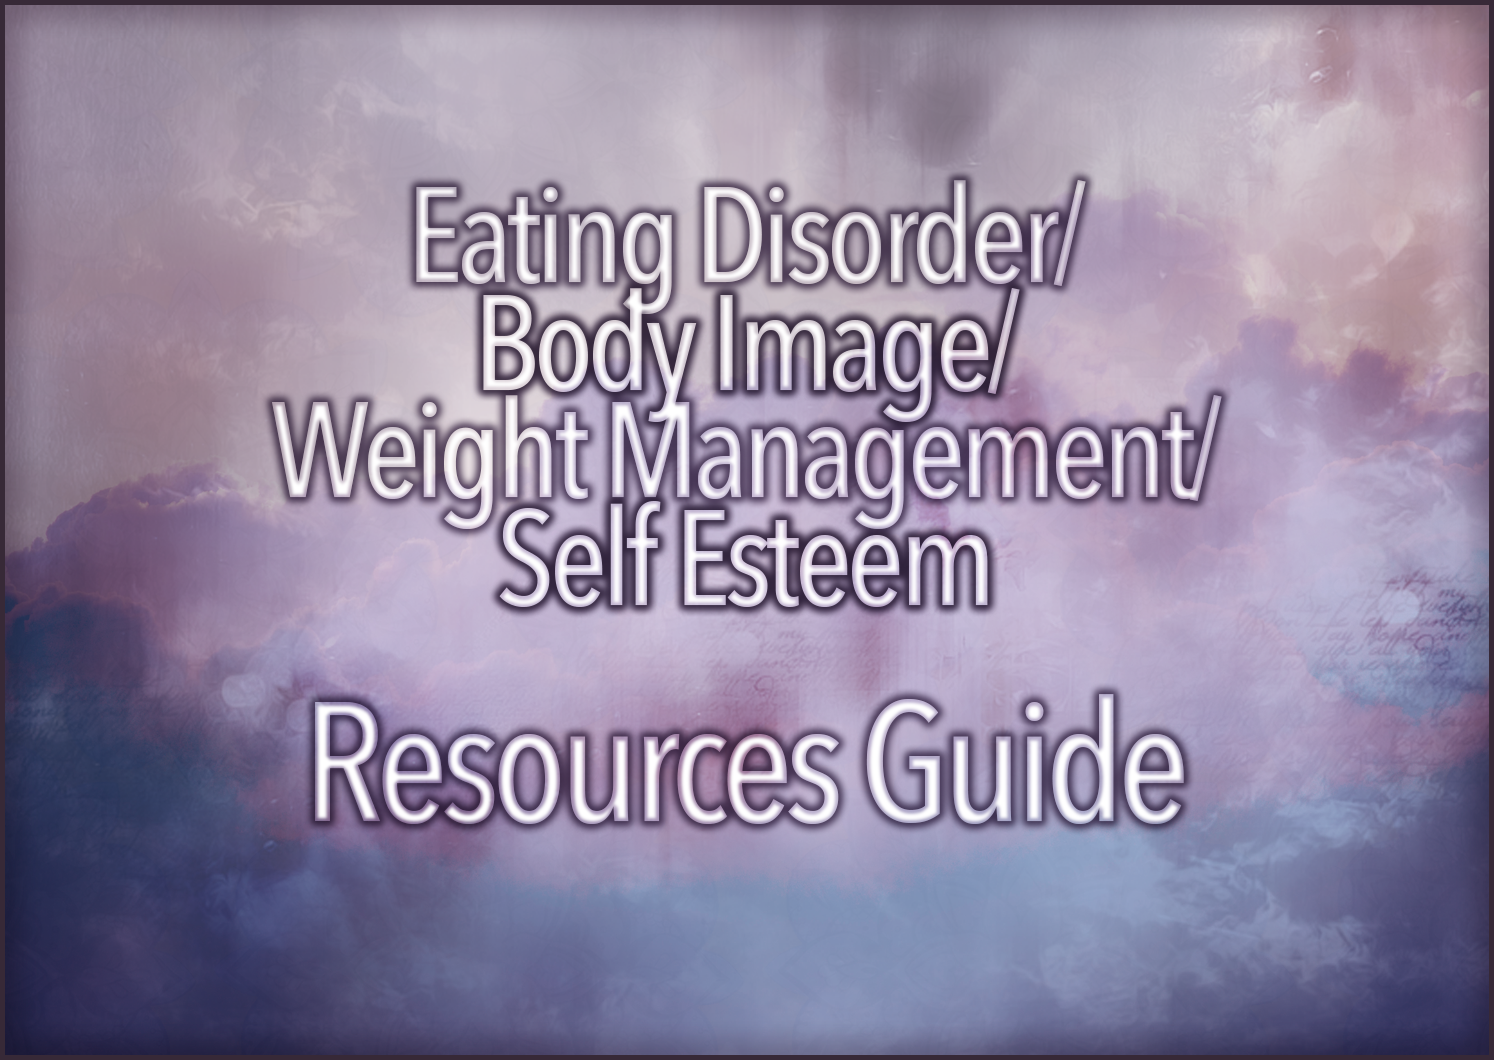 Eating Disorder/Body Image/Weight Management/Self Esteem Resources Guide